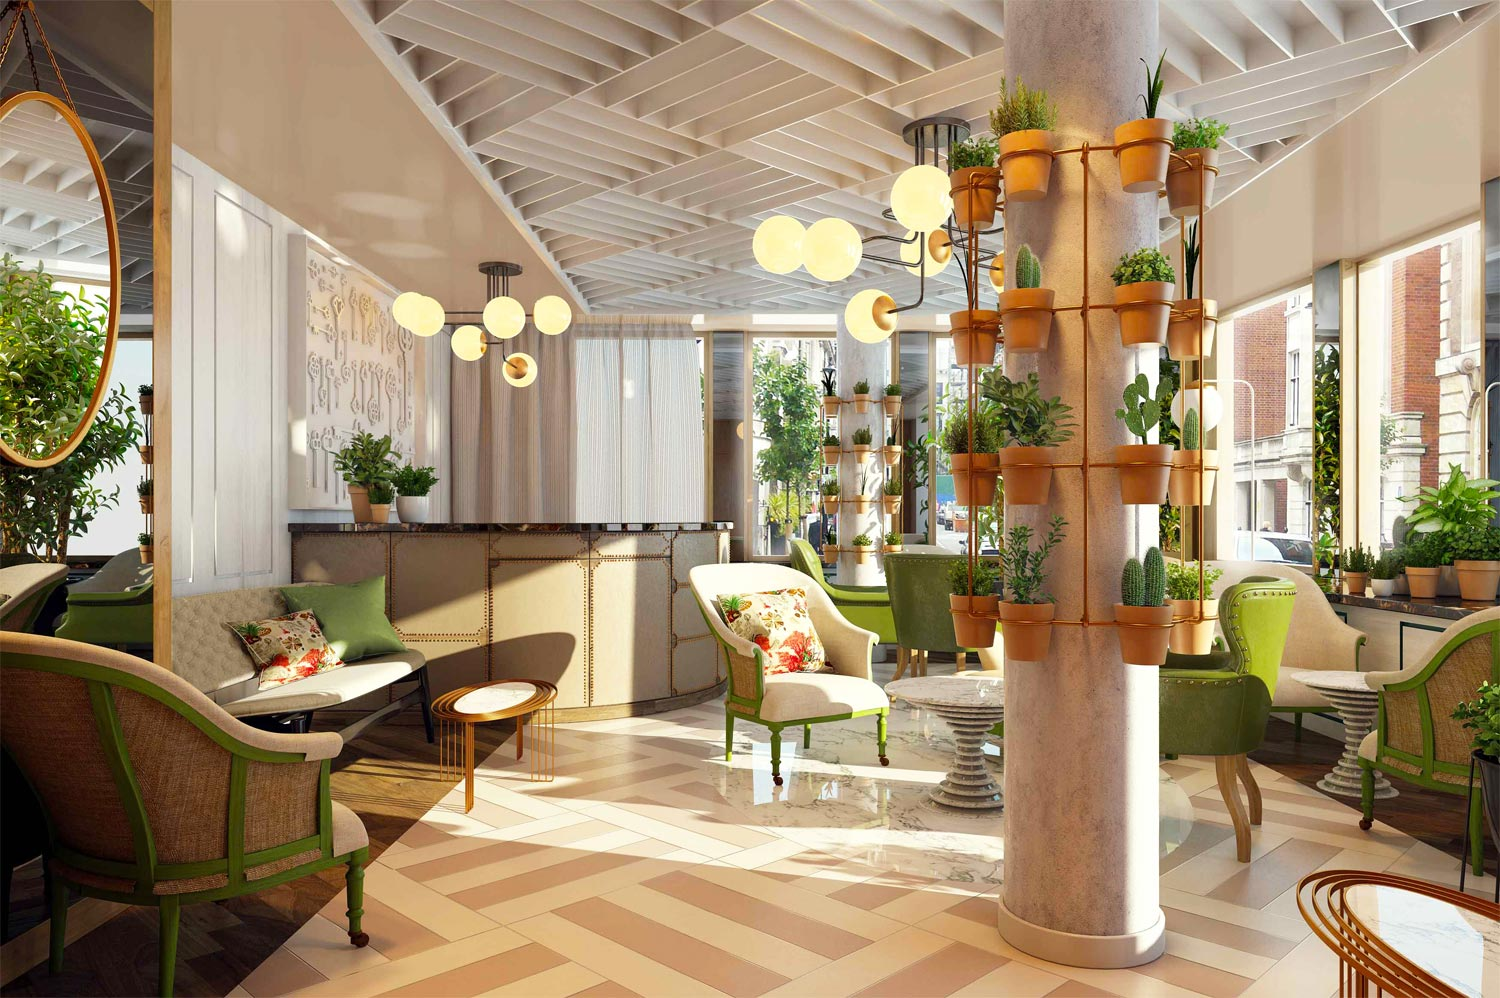 Opening This Spring: The Vintry & Mercer Hotel 1